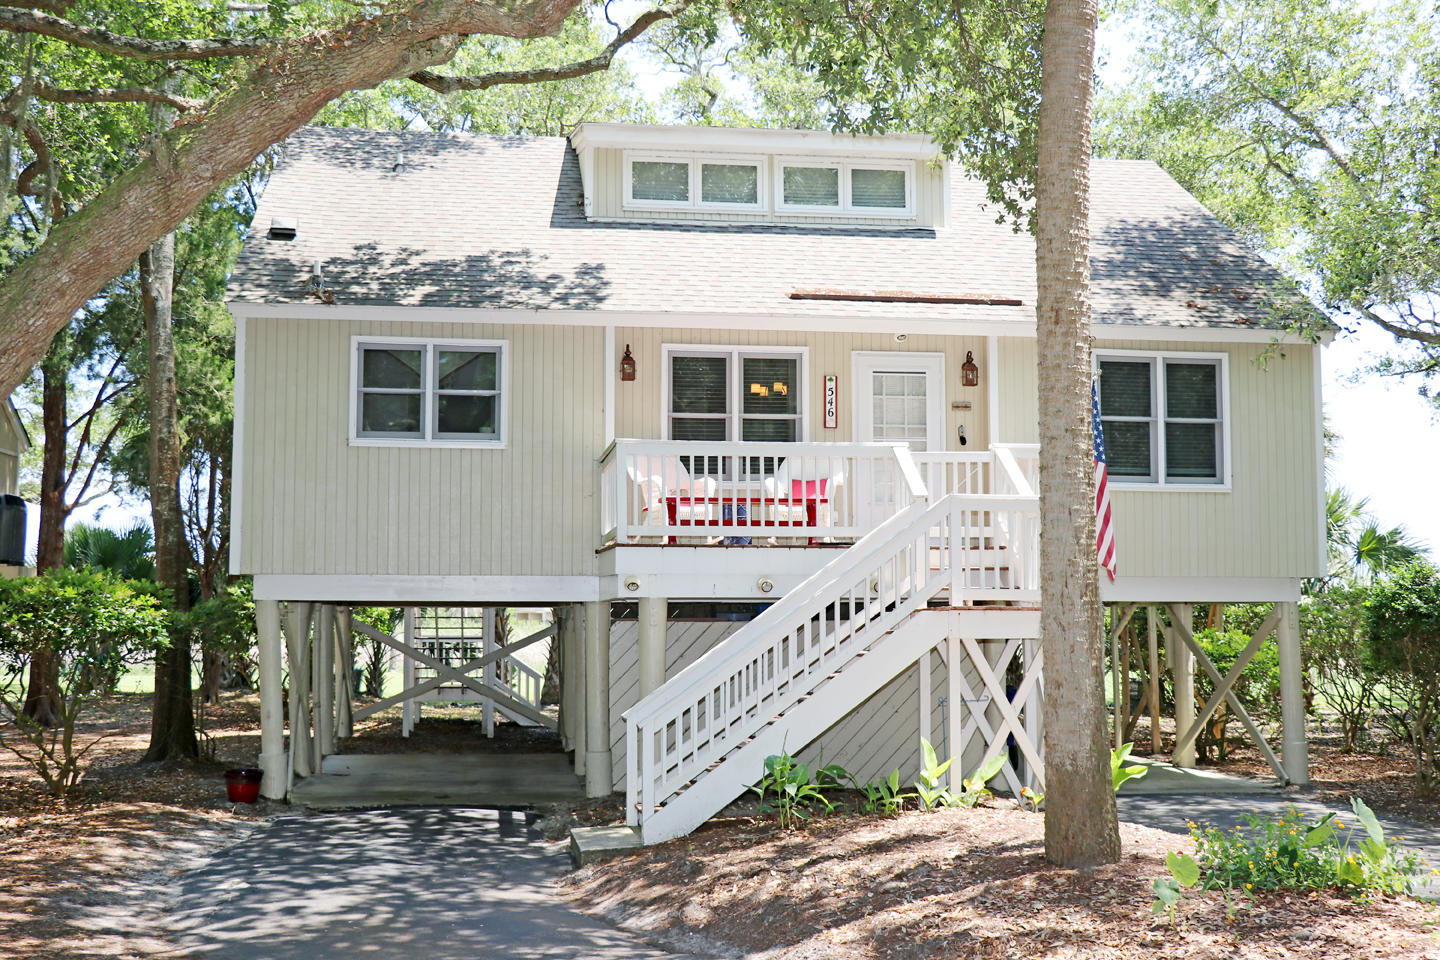 Tarpon Pond Cottages Homes For Sale - 546 Cobby Creek, Seabrook Island, SC - 13